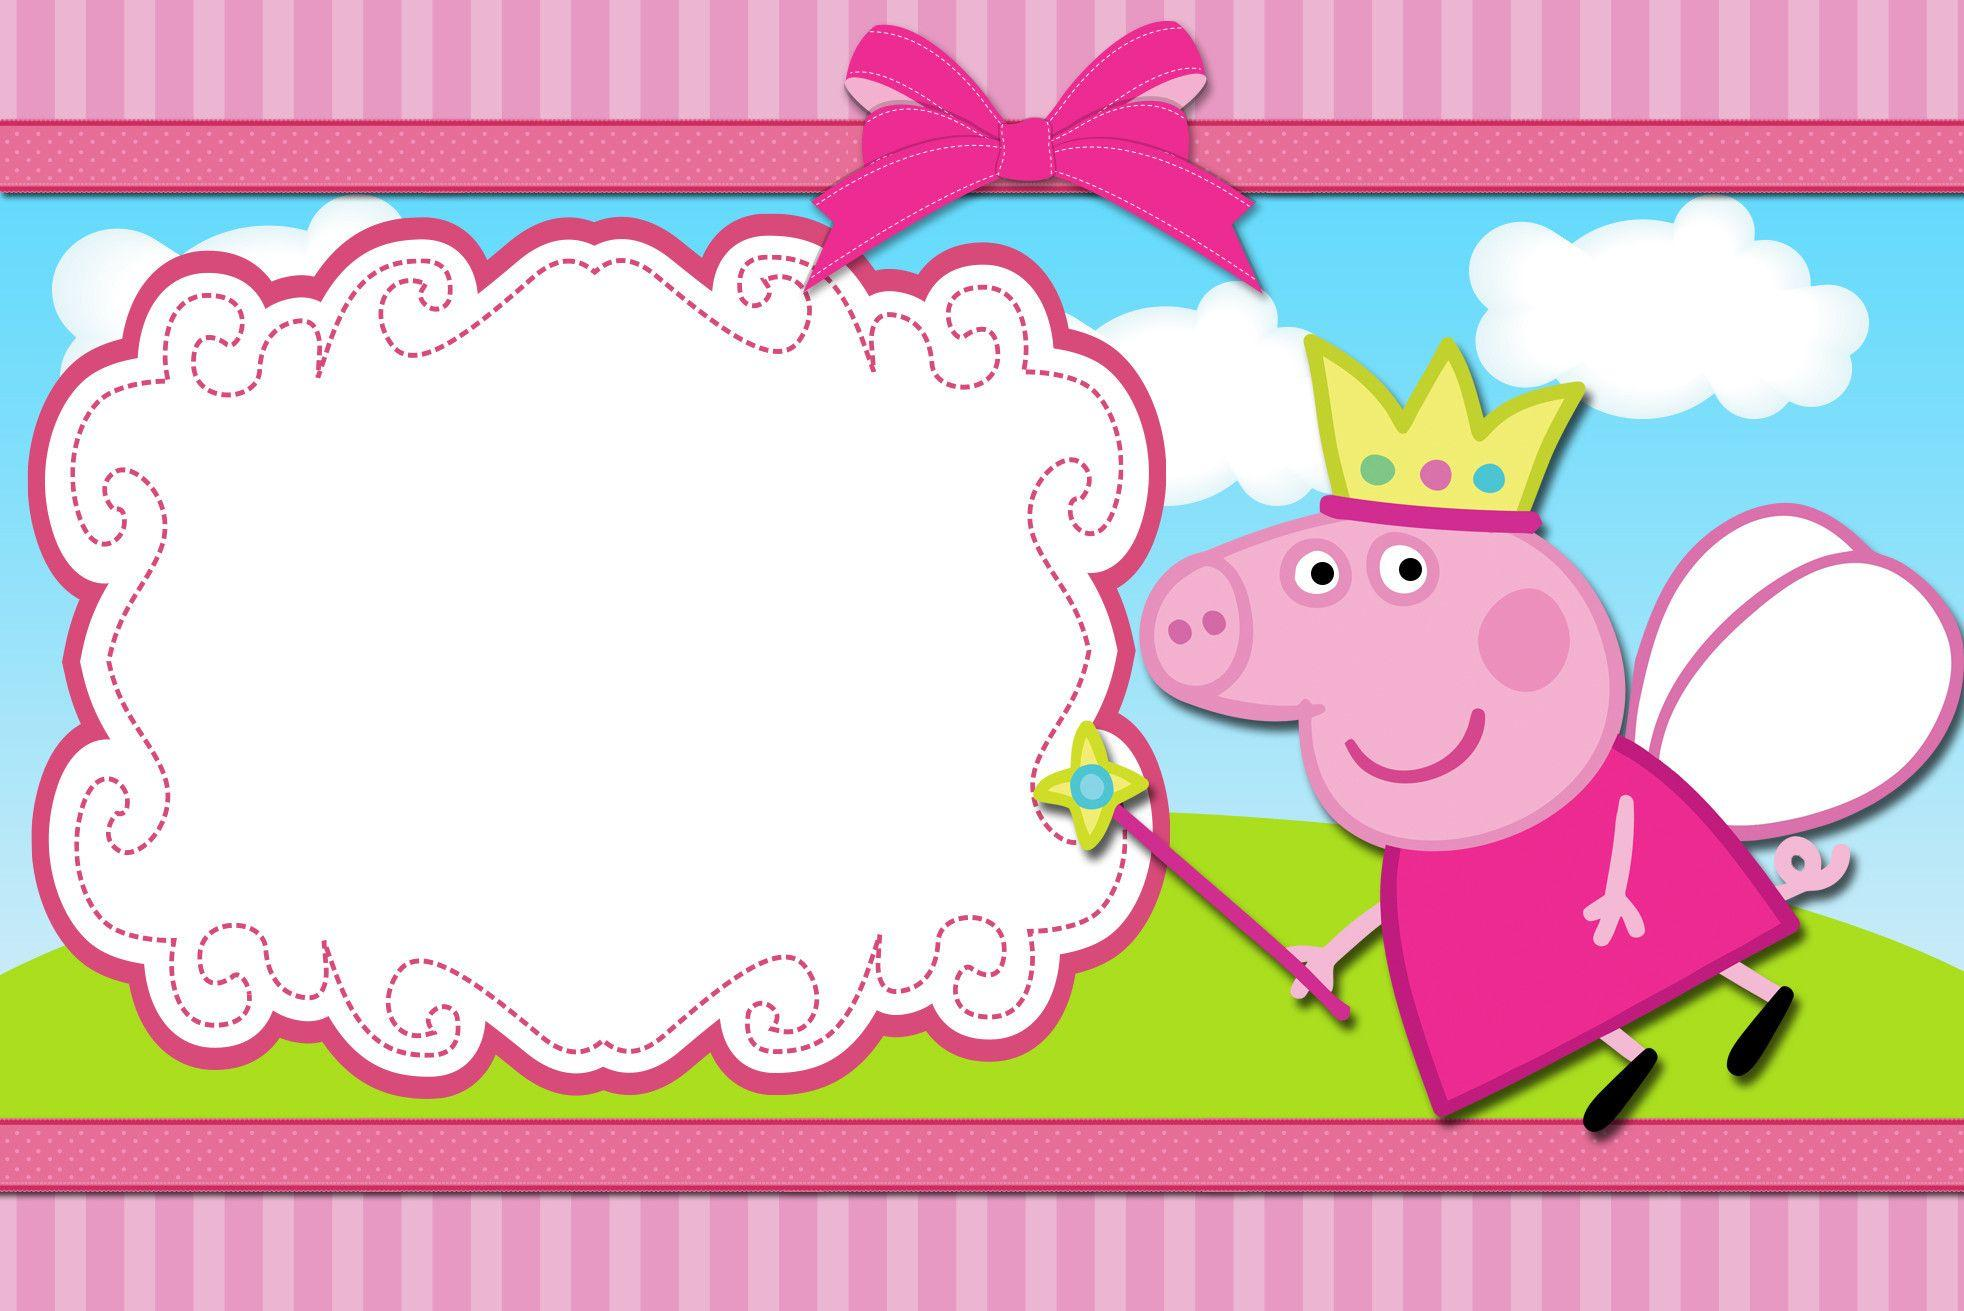 Peppa Pig Wallpapers ·①